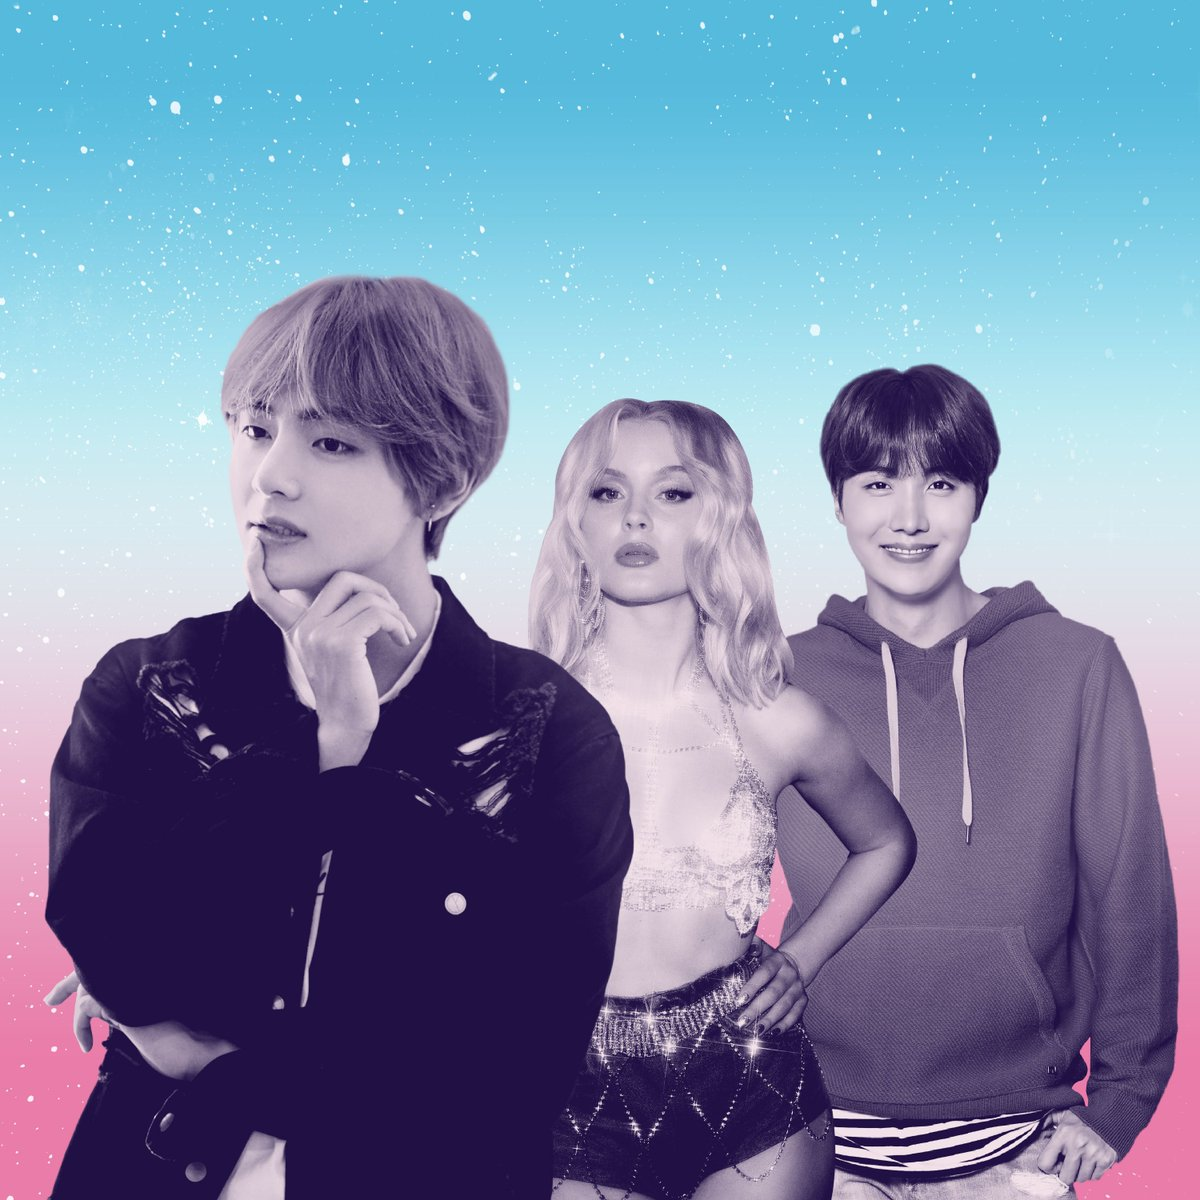 Skin is clear✅ Crops are flourishing✅ Are you listening to #ABrandNewDay by @bts_bighit and @zaralarsson ? spoti.fi/ABrandNewDay